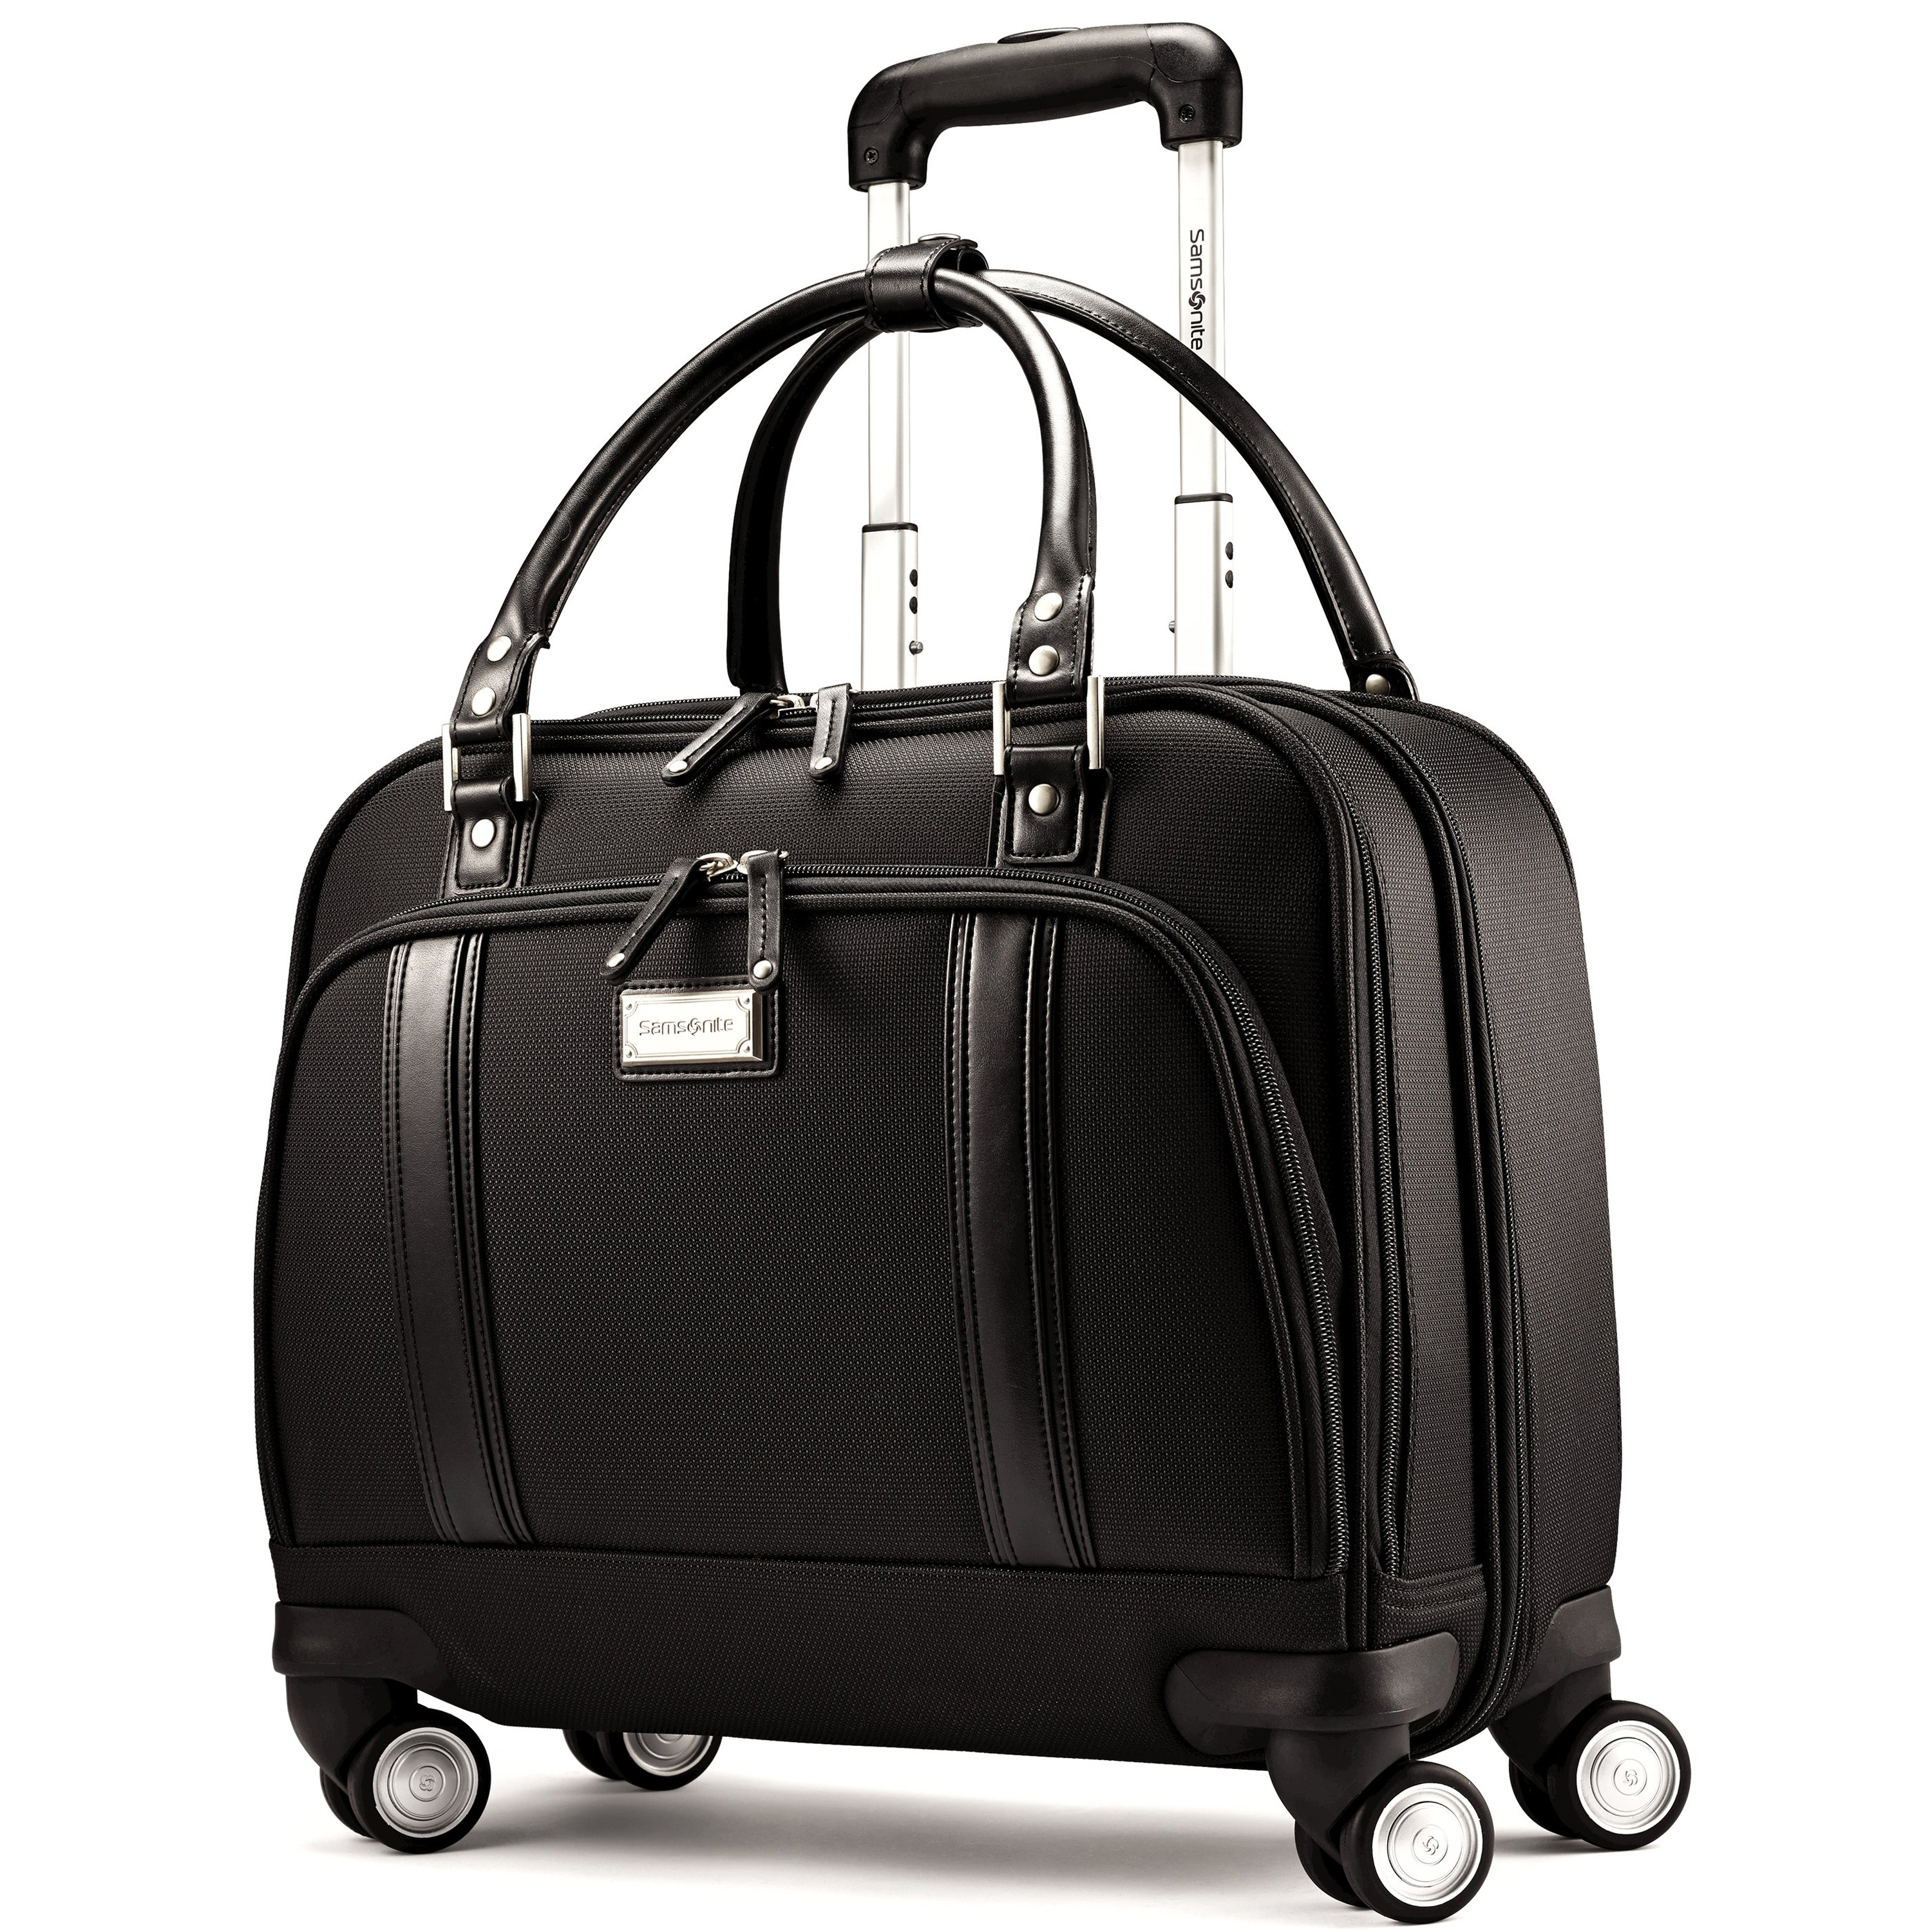 "A Stylish sophisticated way to transport all your business needs in an effortless fashion! Fits in under most airline seats and in most overhead bins.>br> Features a stylish interior with functional organization. Middle gusset has a padded compartment which accommodates up to a 15.6"" laptop and padded accessory padded. Back compartment has ample room for files. Front pocket features an iPad/tablet pocket with organizational features. 4 Multi directional spinner wheels. Retractable push button handle. Weight: 8.84 lbs. Body Dimensions: 16.5"" x 13.5"" x 8.0""Overall Dimensions: 16.5"" x 15.75"" x 8.5"""